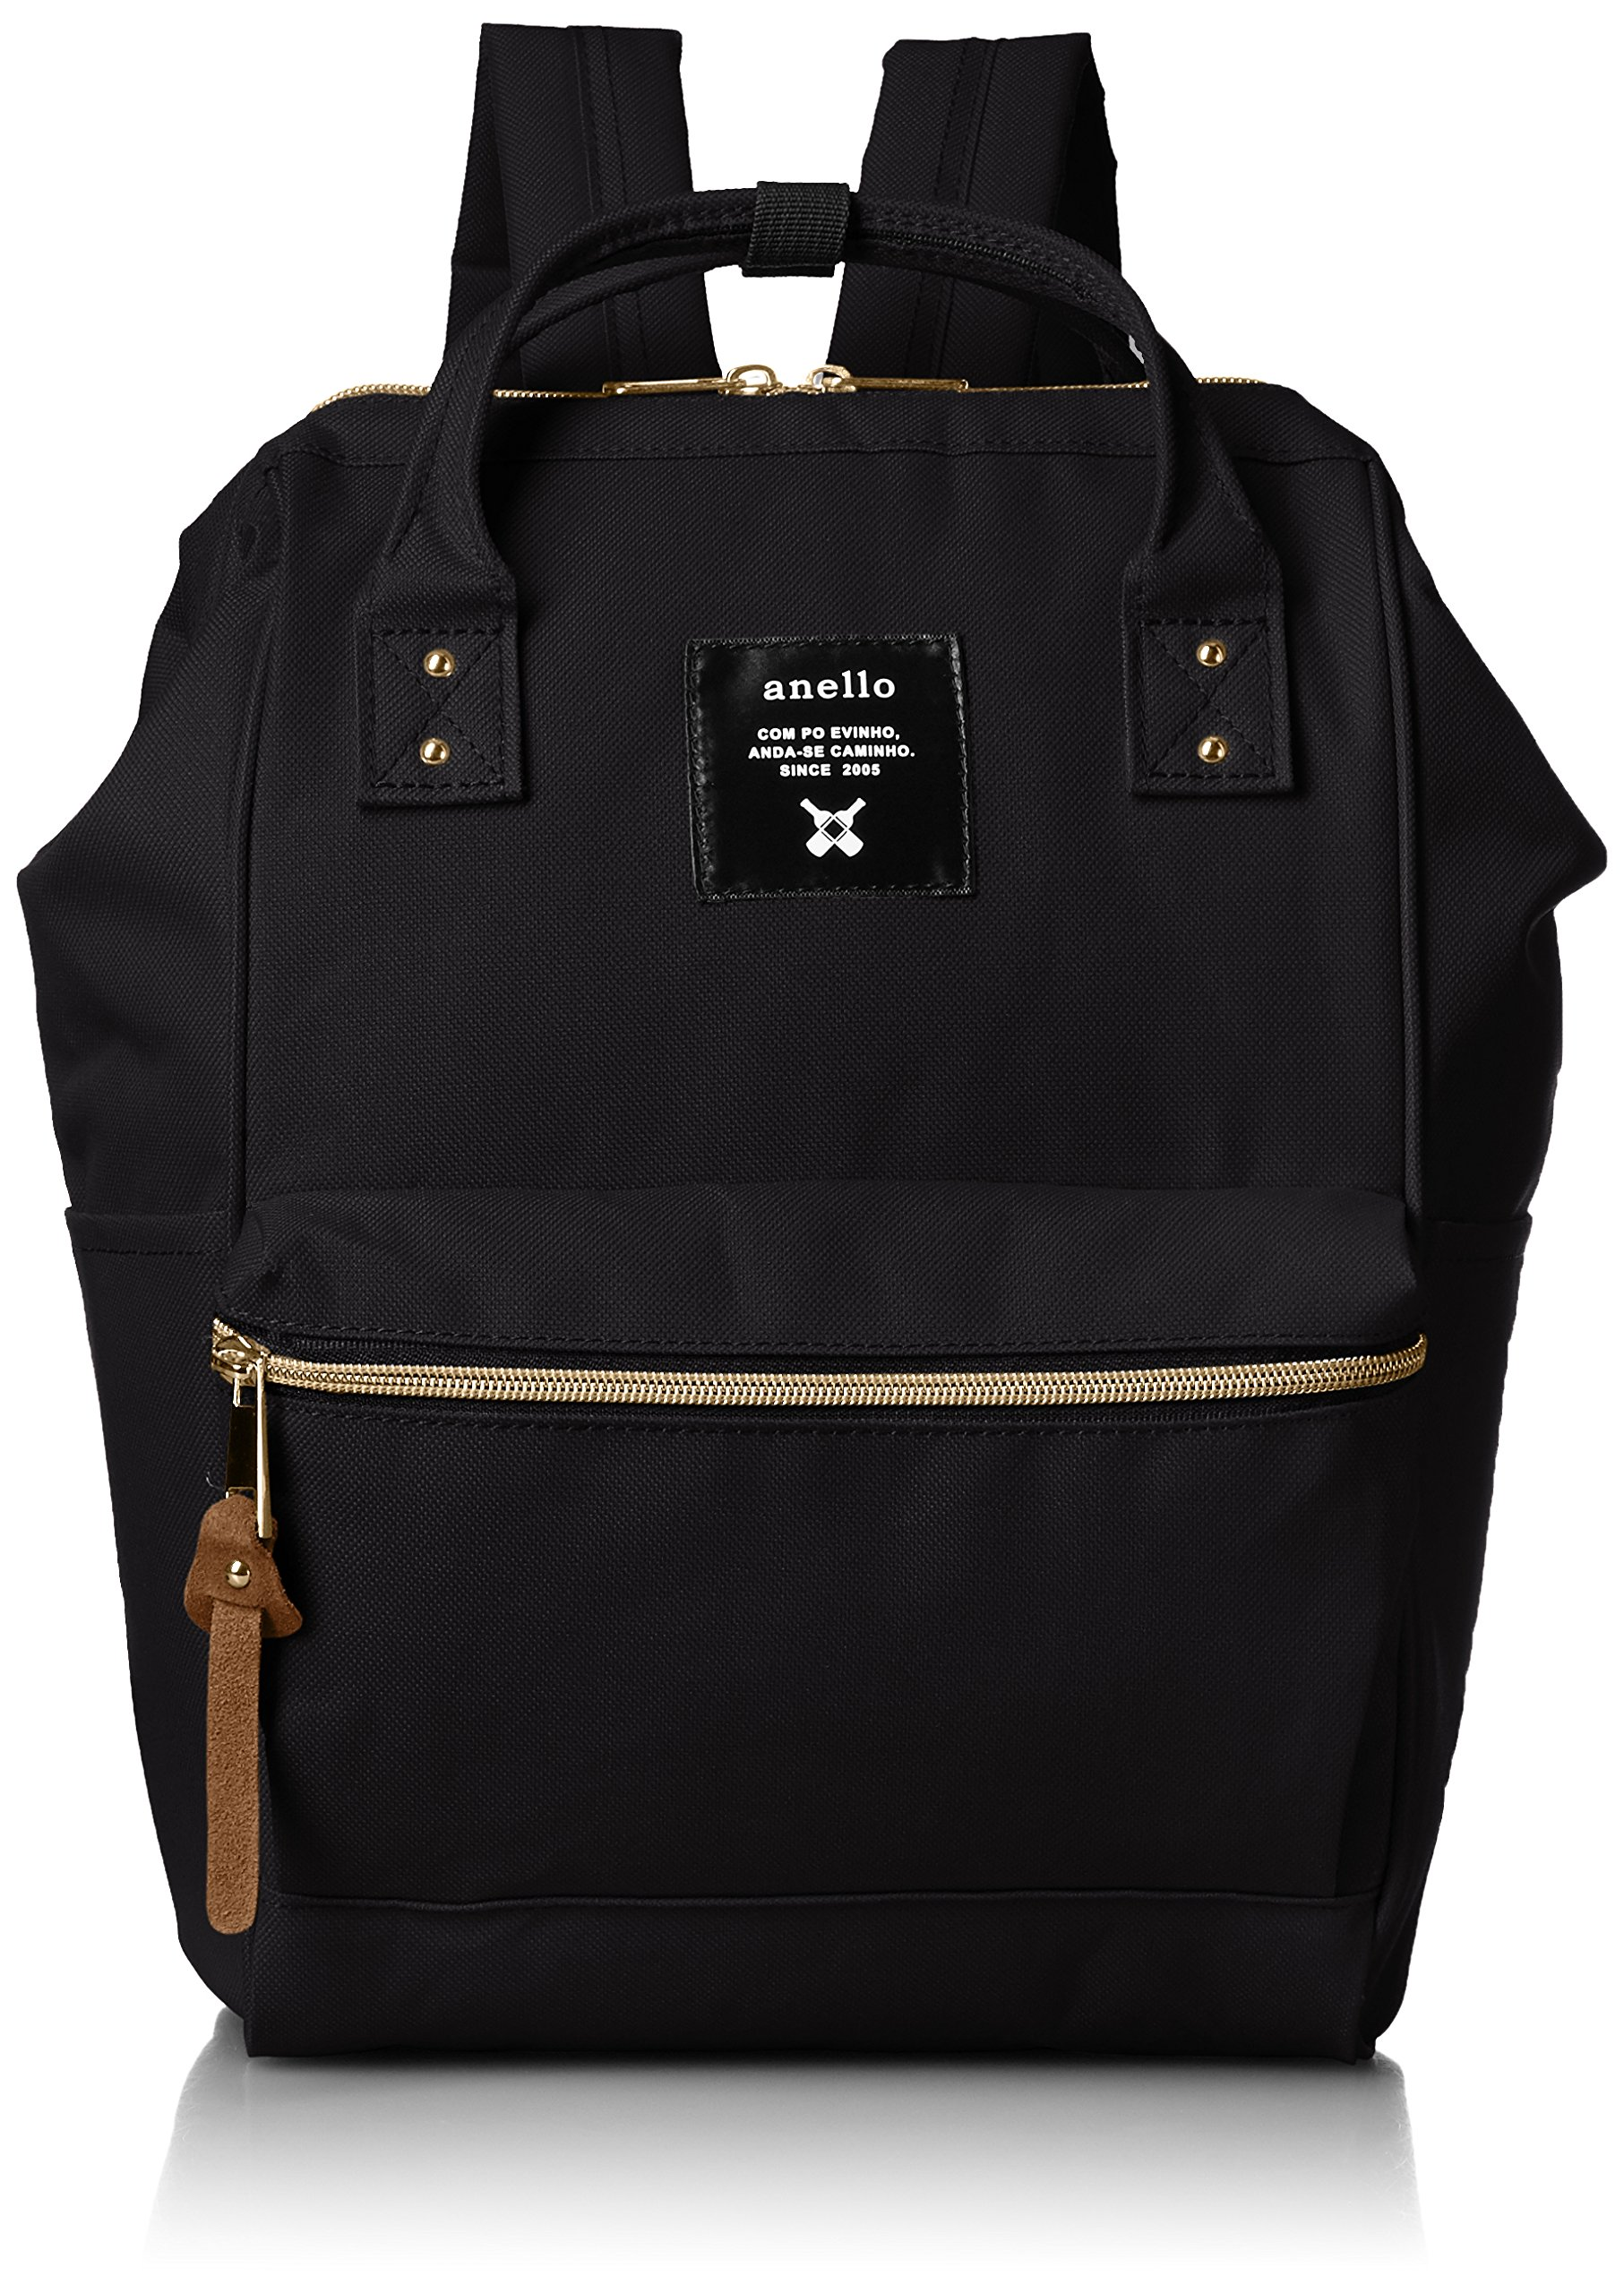 anello #AT-B0197B small backpack with side pockets black